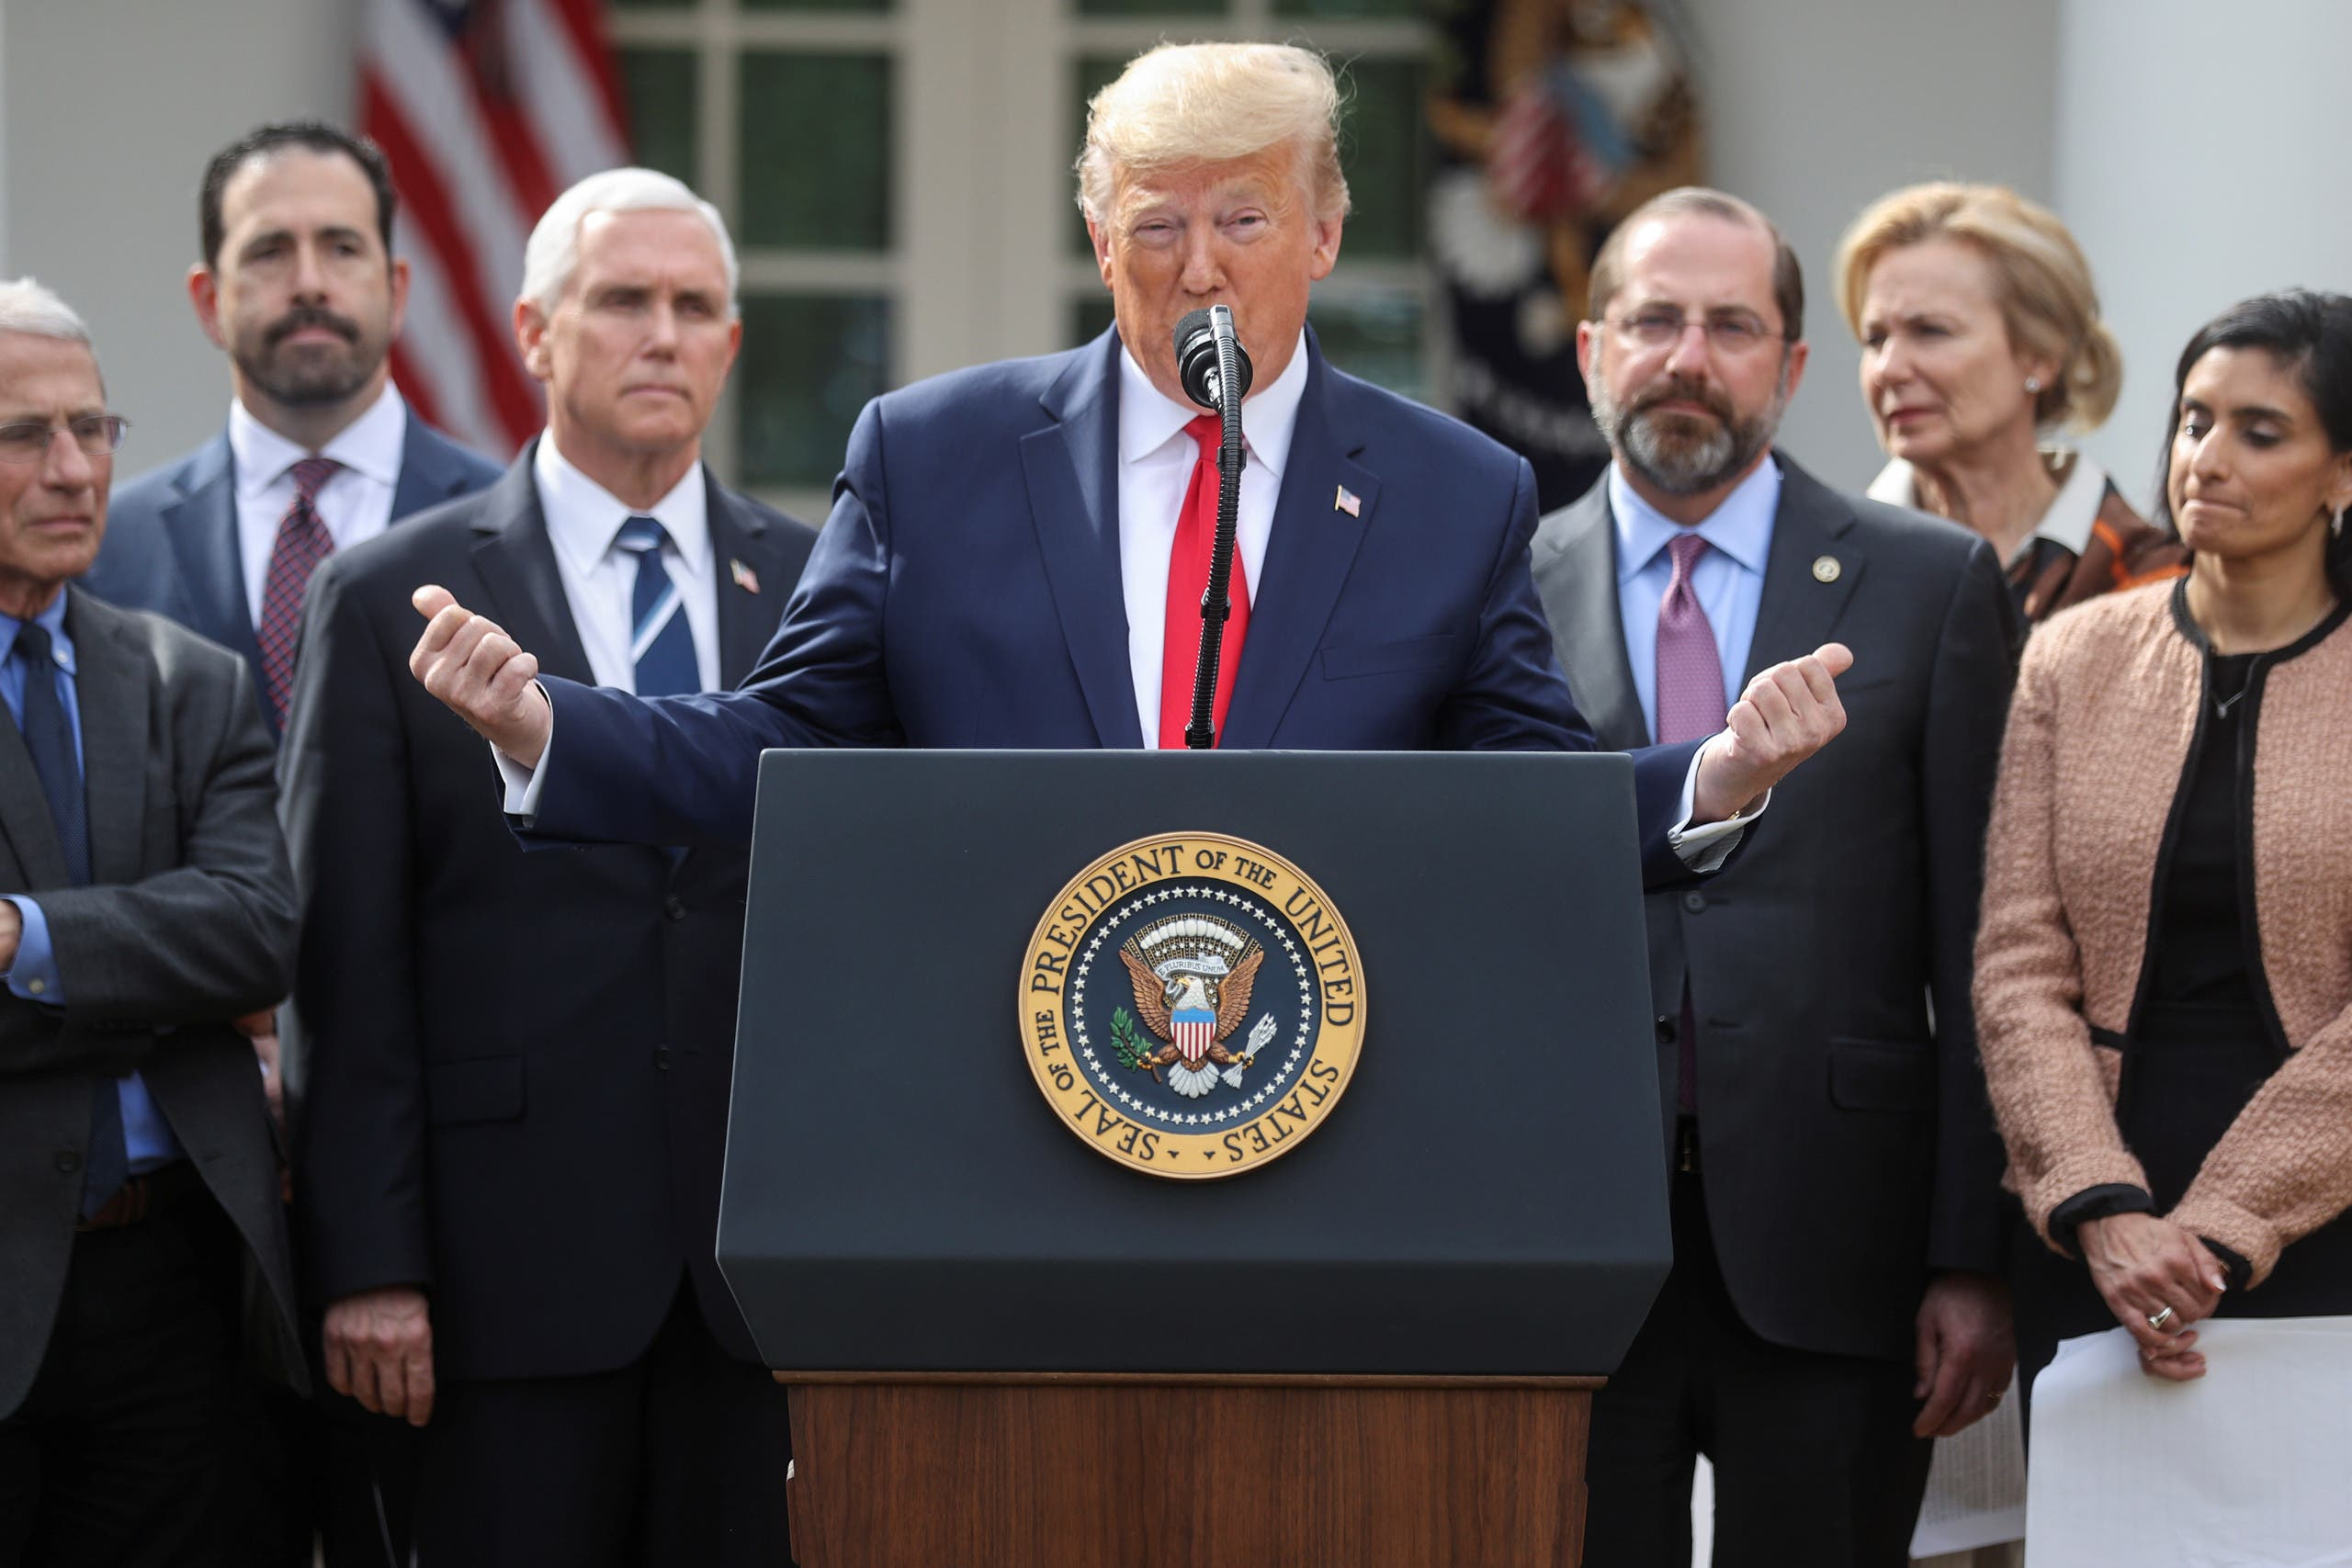 US President Donald Trump stands with members of his coronavirus task force as he declares the coronavirus pandemic a national emergency during a news conference in the Rose Garden of the White House in Washington, on March 13, 2020. (Reuters)